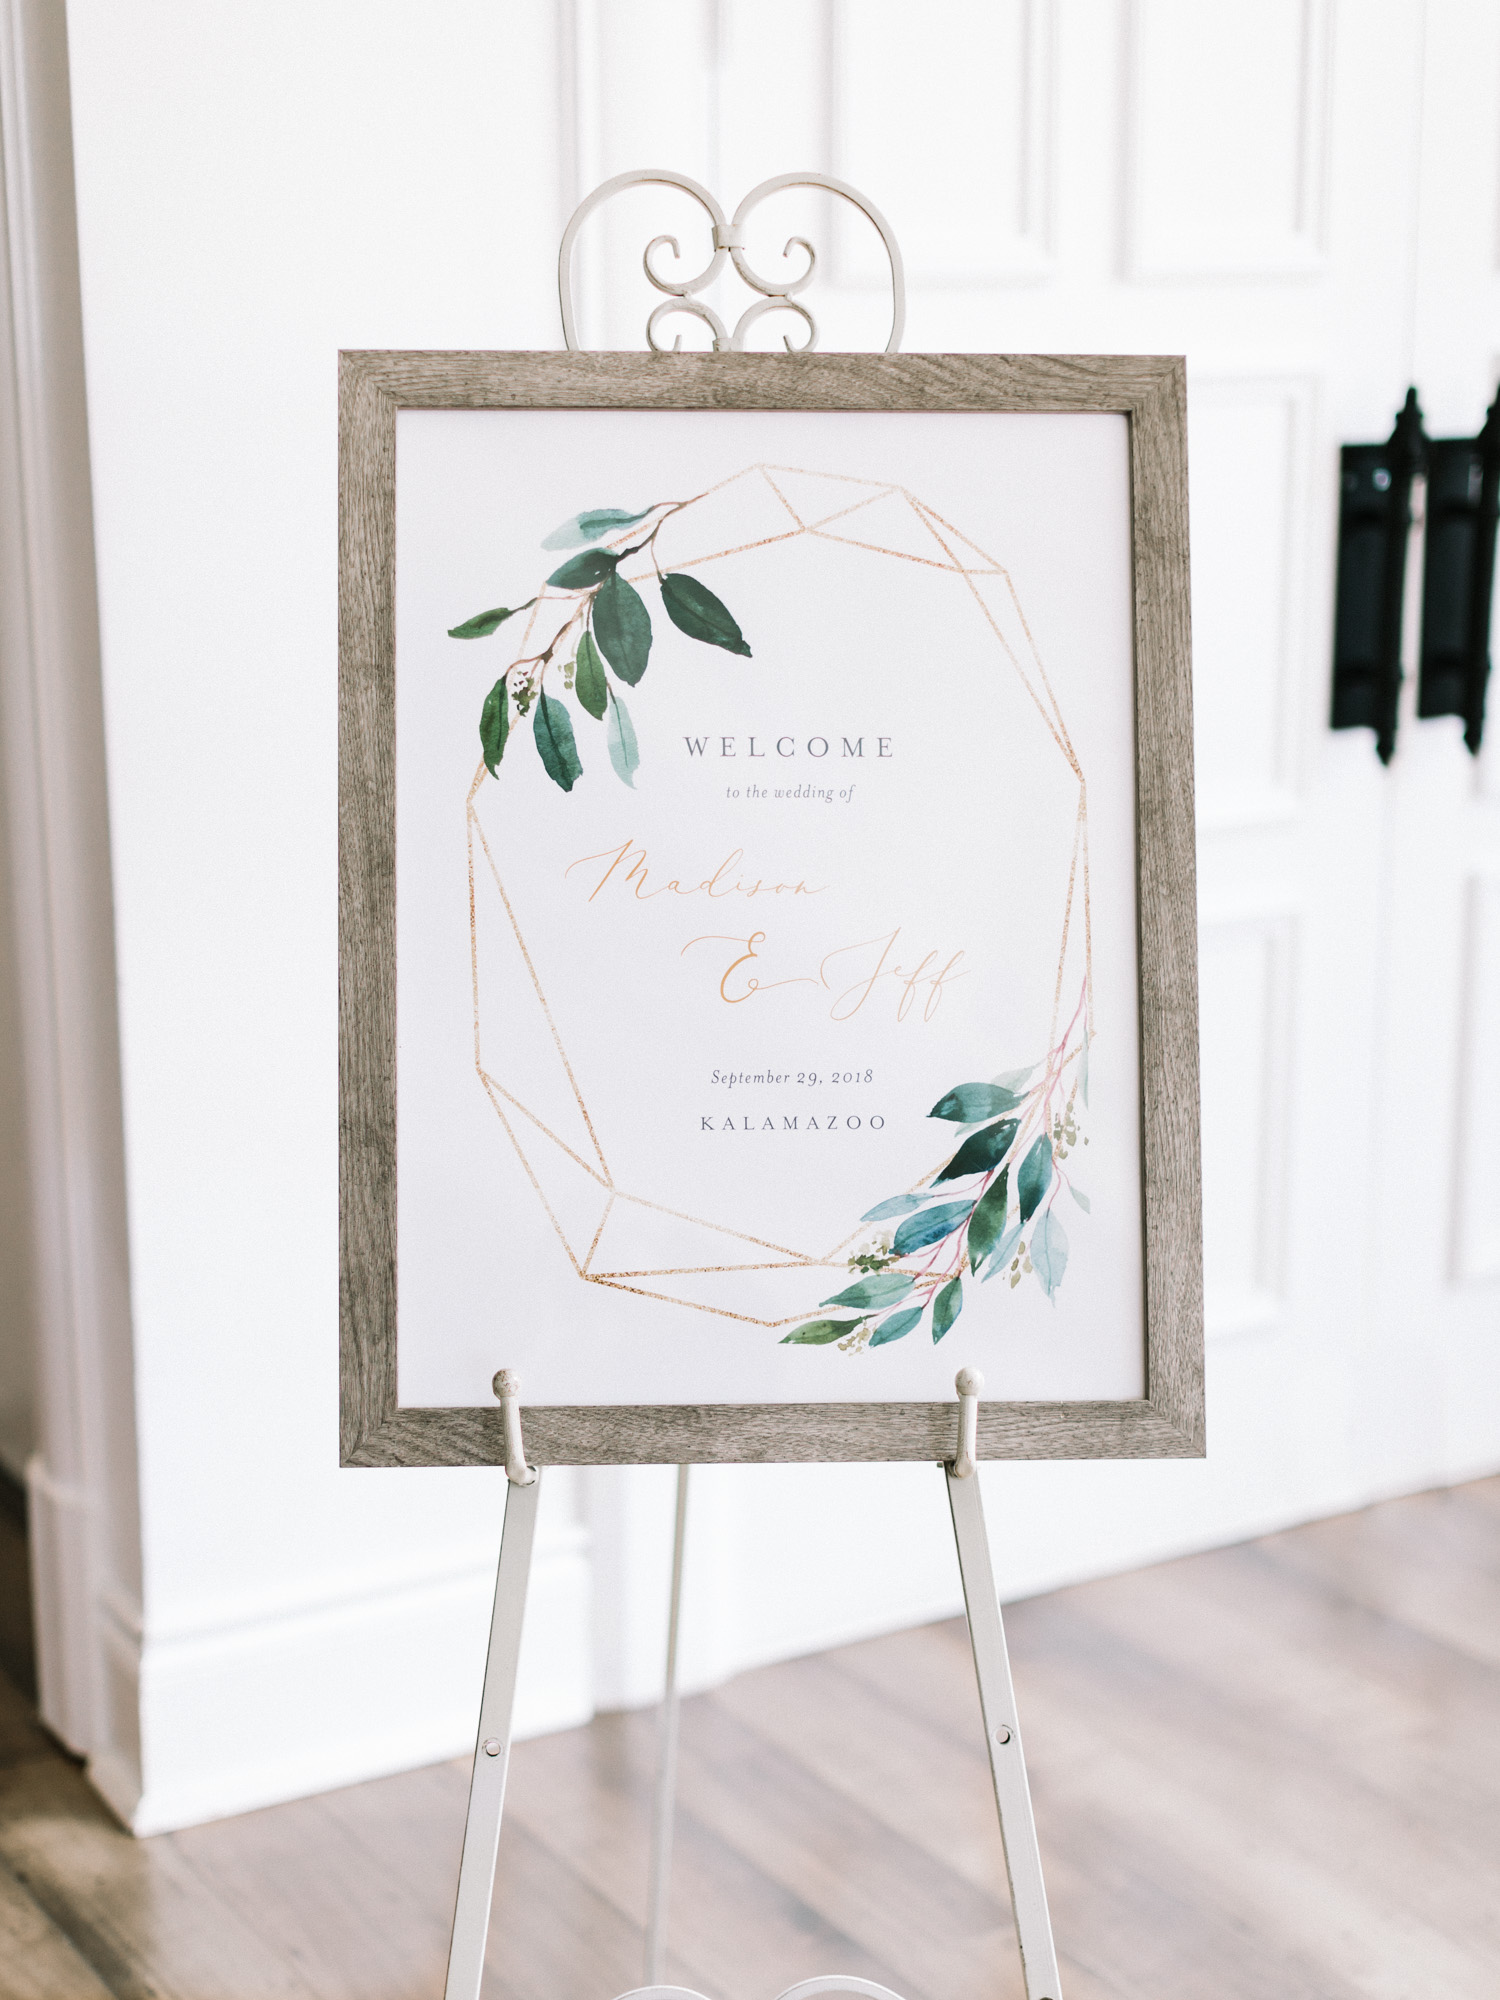 A welcome sign in the Loft 310 wedding reception space